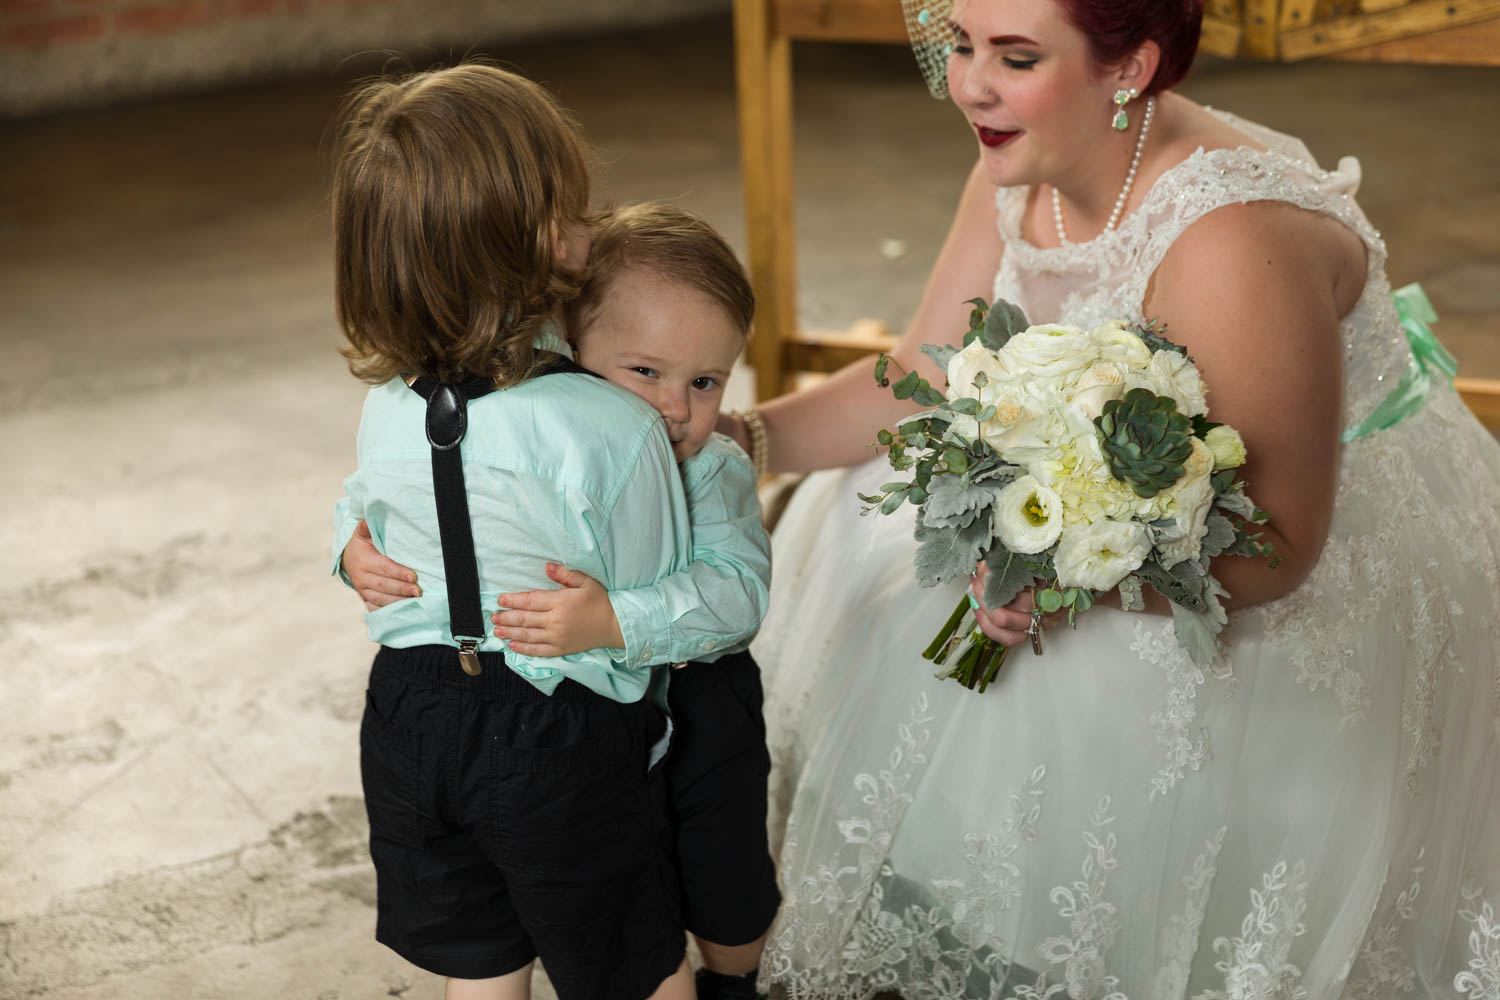 Giving hugs between ring bearers